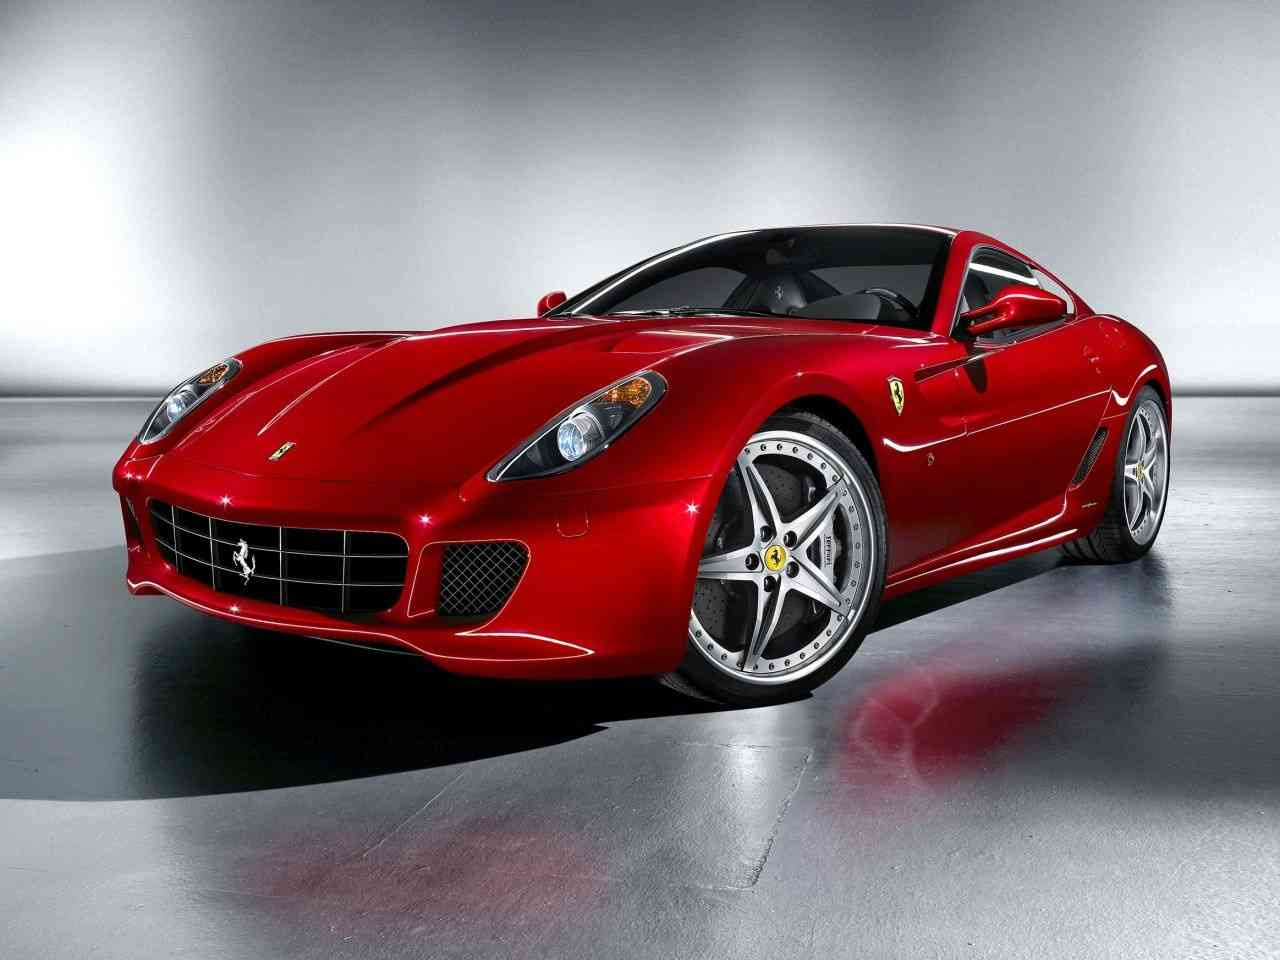 FERRARI 599 GTB FIORANO brown